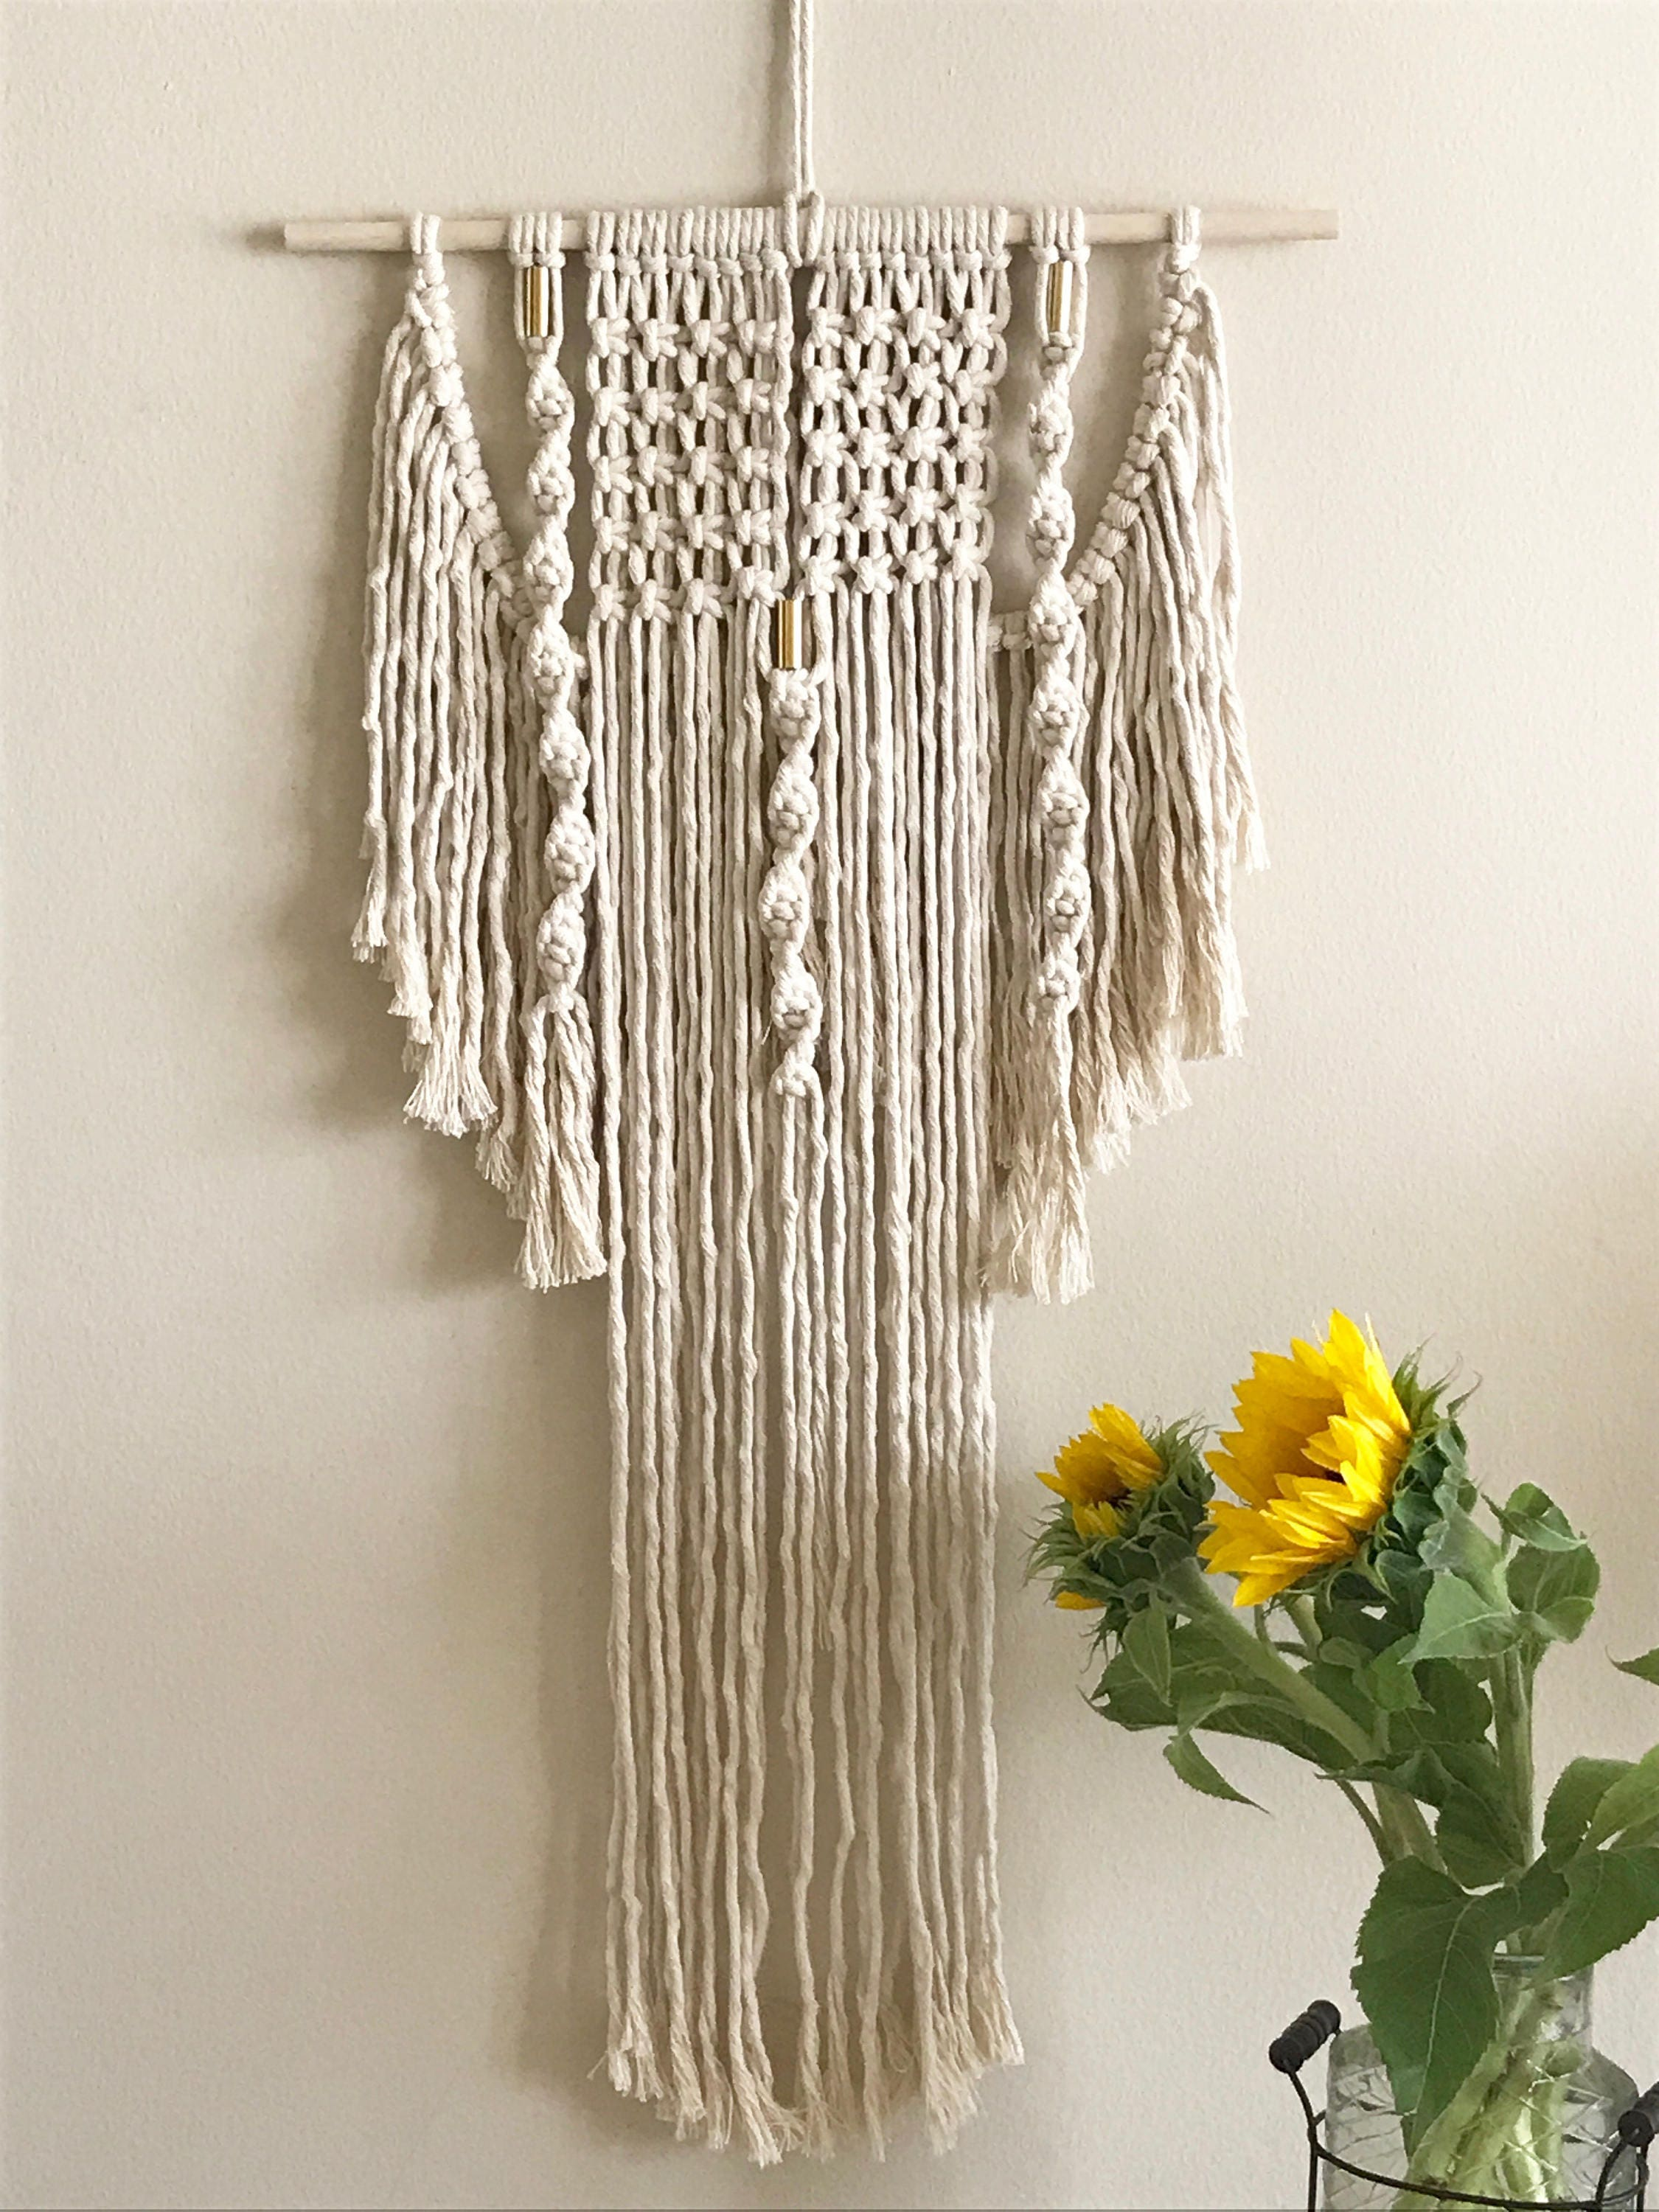 Medium Macrame Wall Hanging Modern Macrame Boho Home Decor